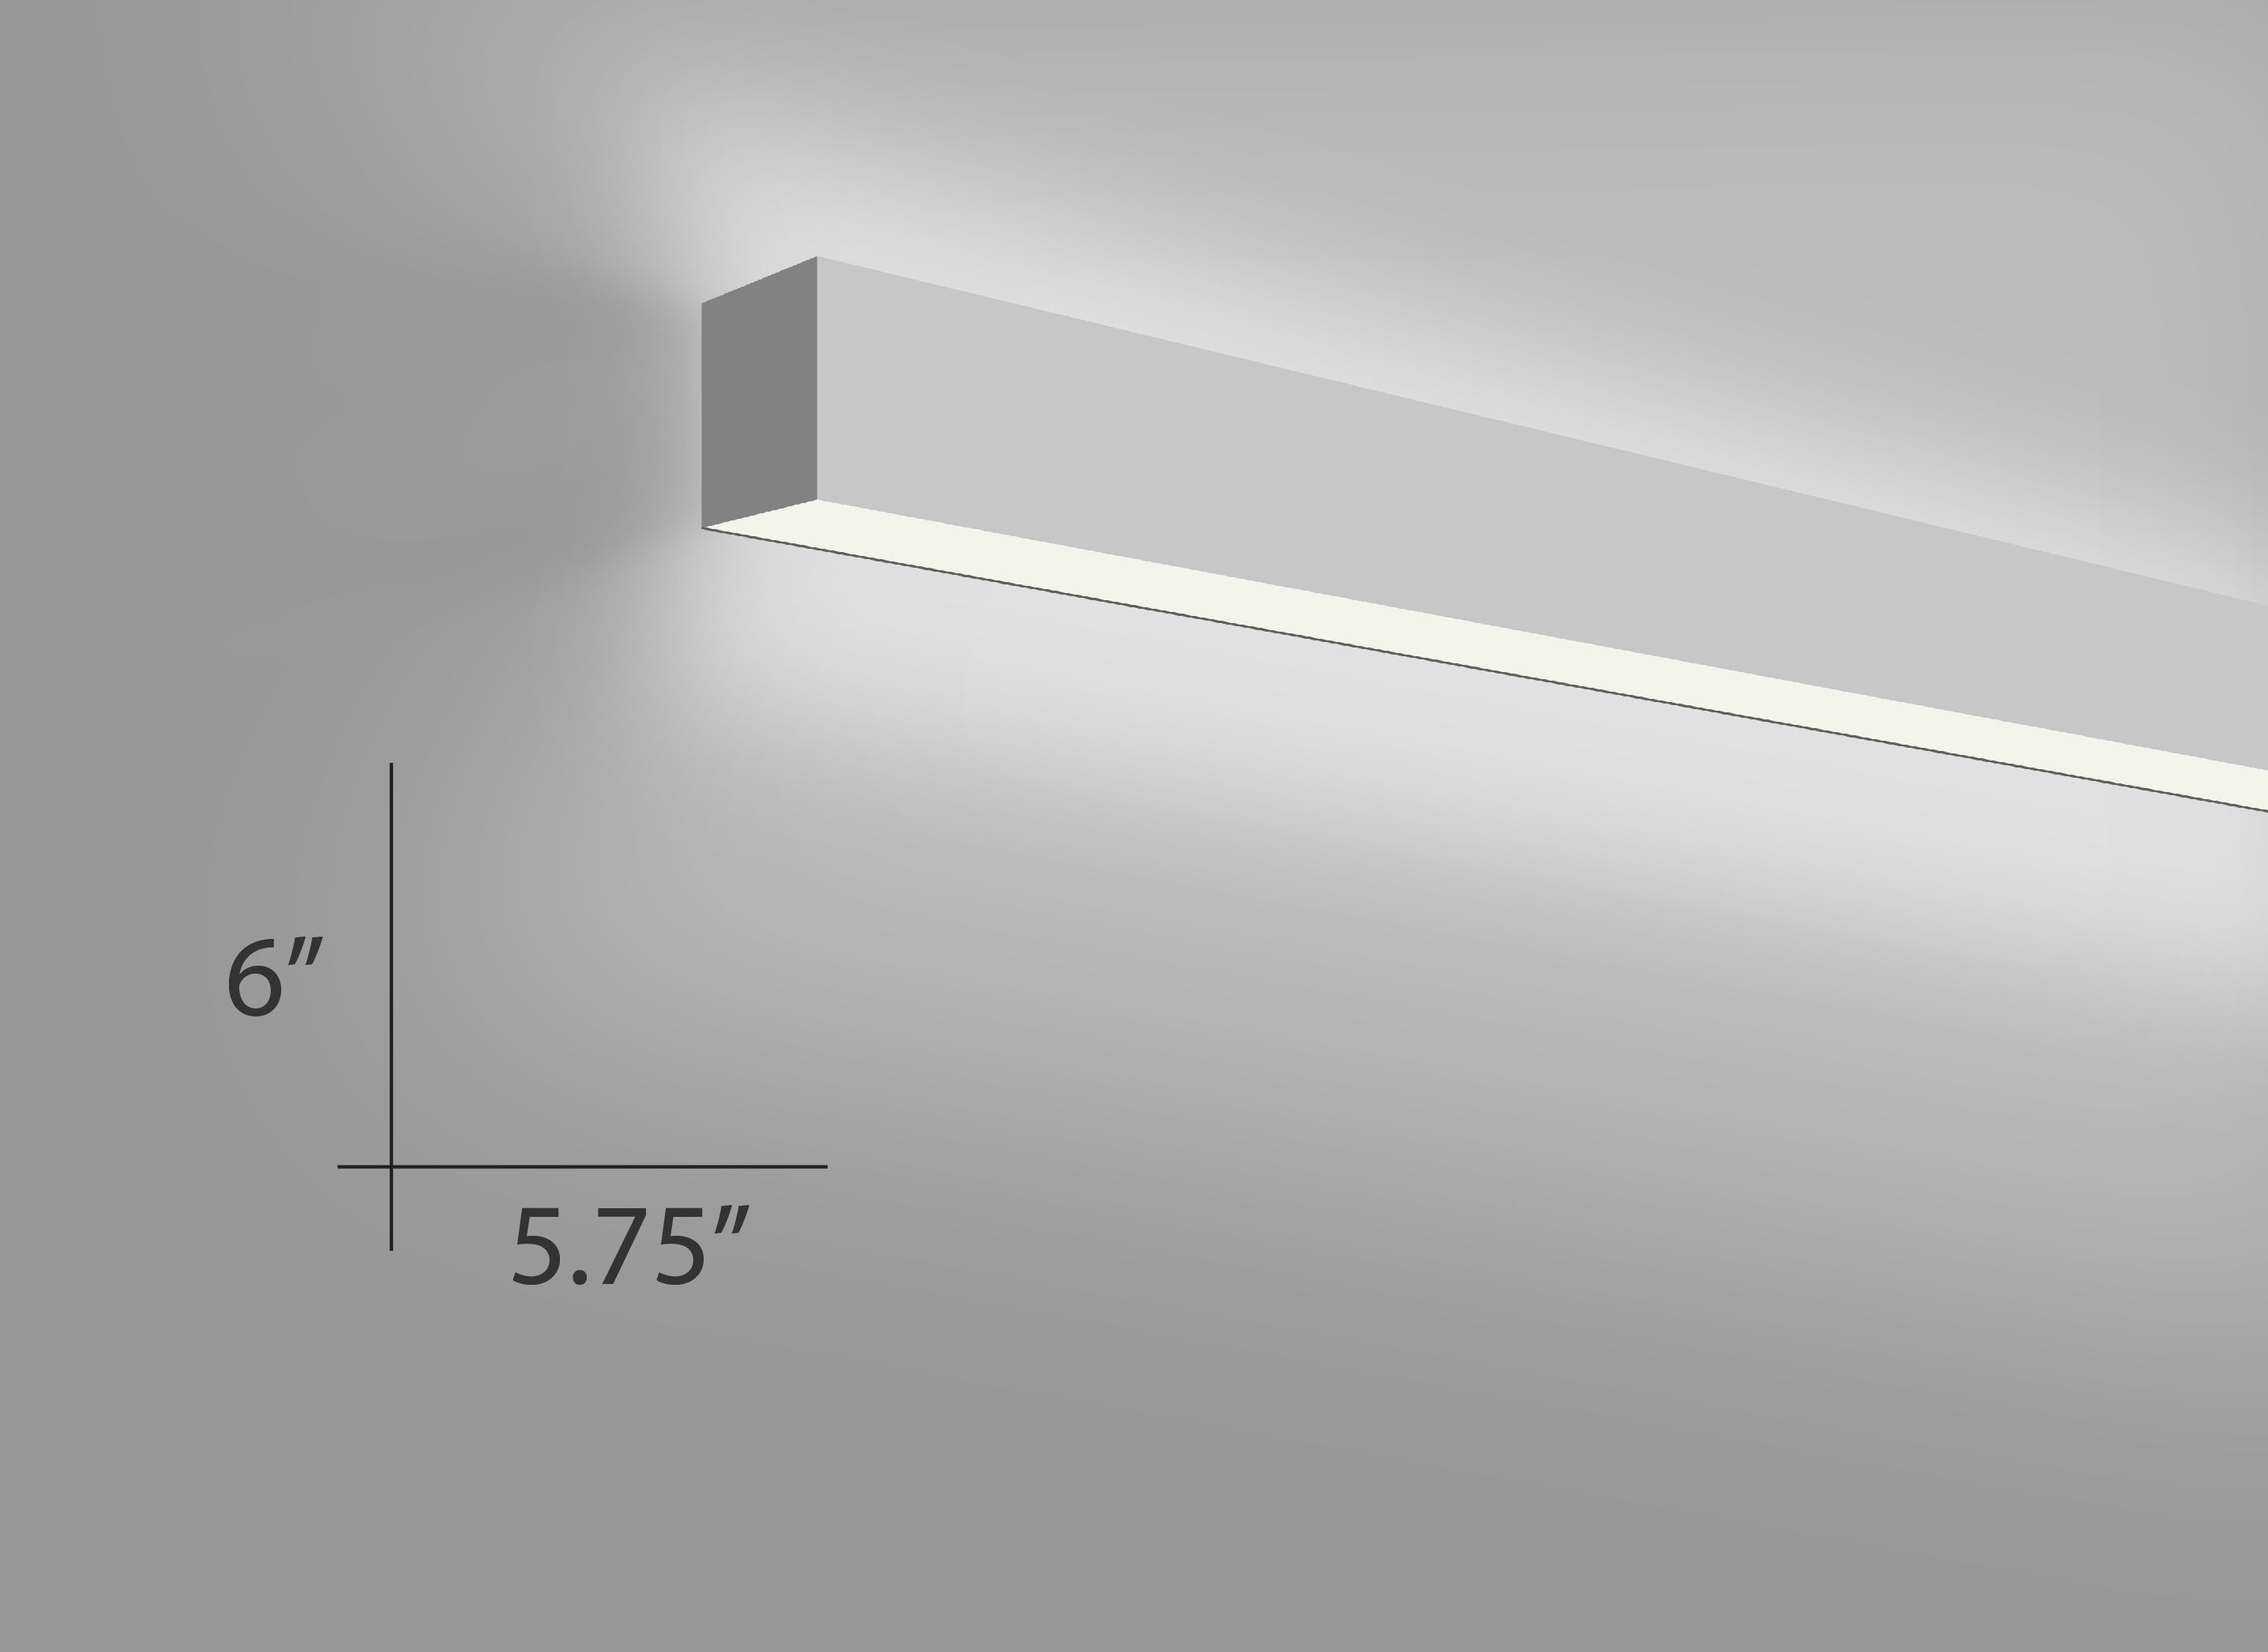 Alcon Lighting Beam 66 Wall Mount 6019 W Architectural Linear Fluorescent Light Fixture